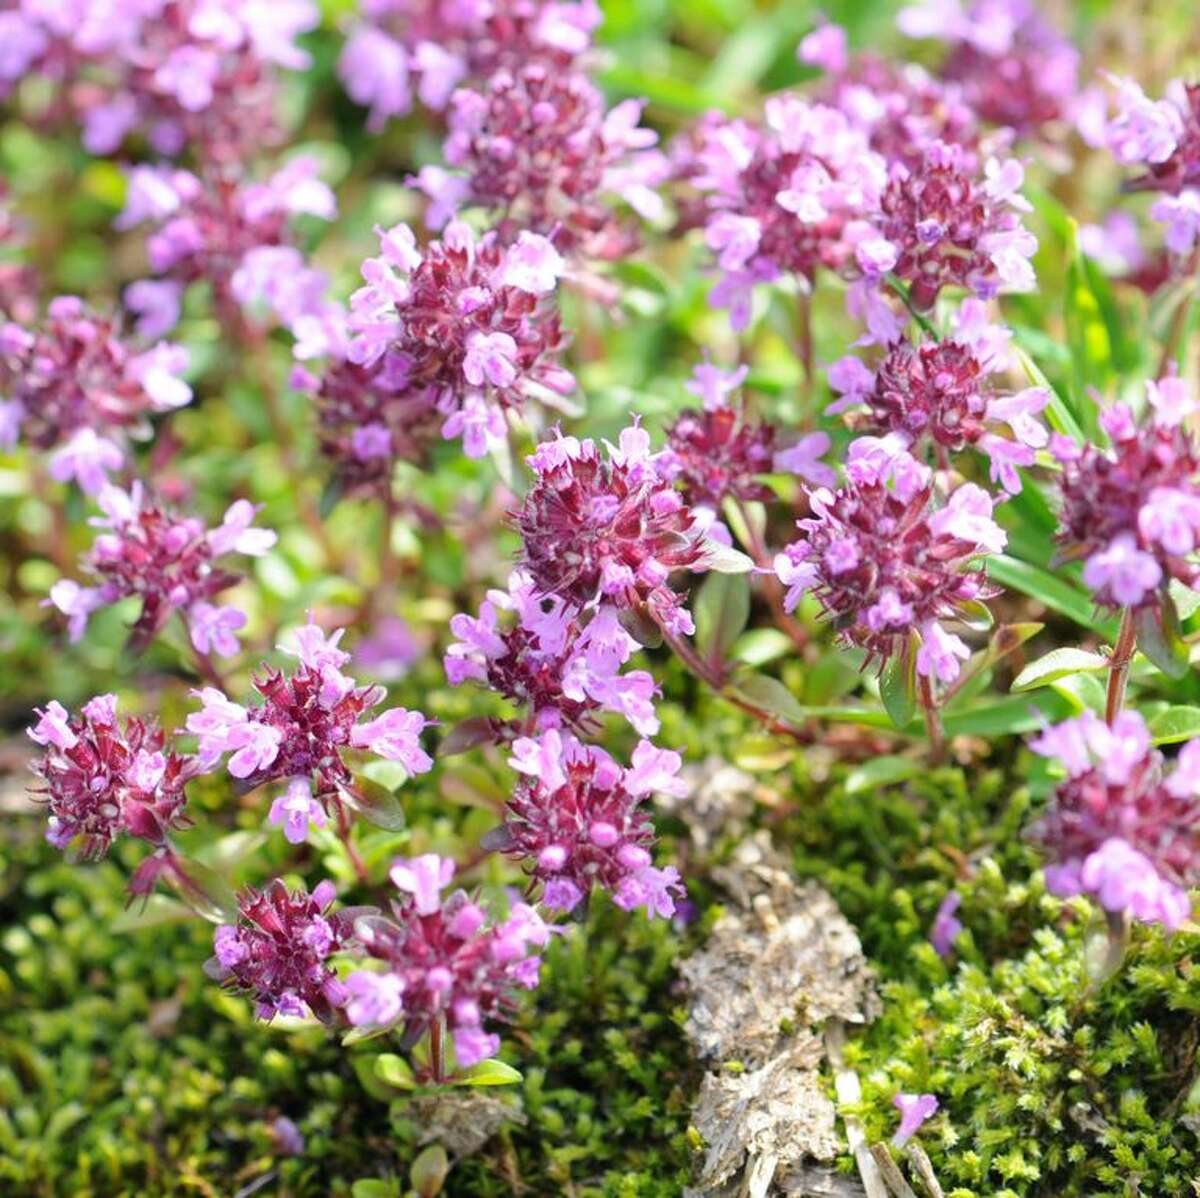 Creeping Thyme Low-growing mats of Creeping Thyme are covered in teeny purple or white flowers in late spring, which makes it a haven for pollinators. This tenacious perennial spreads rapidly, thrives in full sun, is cold hardy, grows in poor soil, and is drought tolerant once established. And, of course, you can snip off the leaves for cooking.  Shop Creeping Thyme